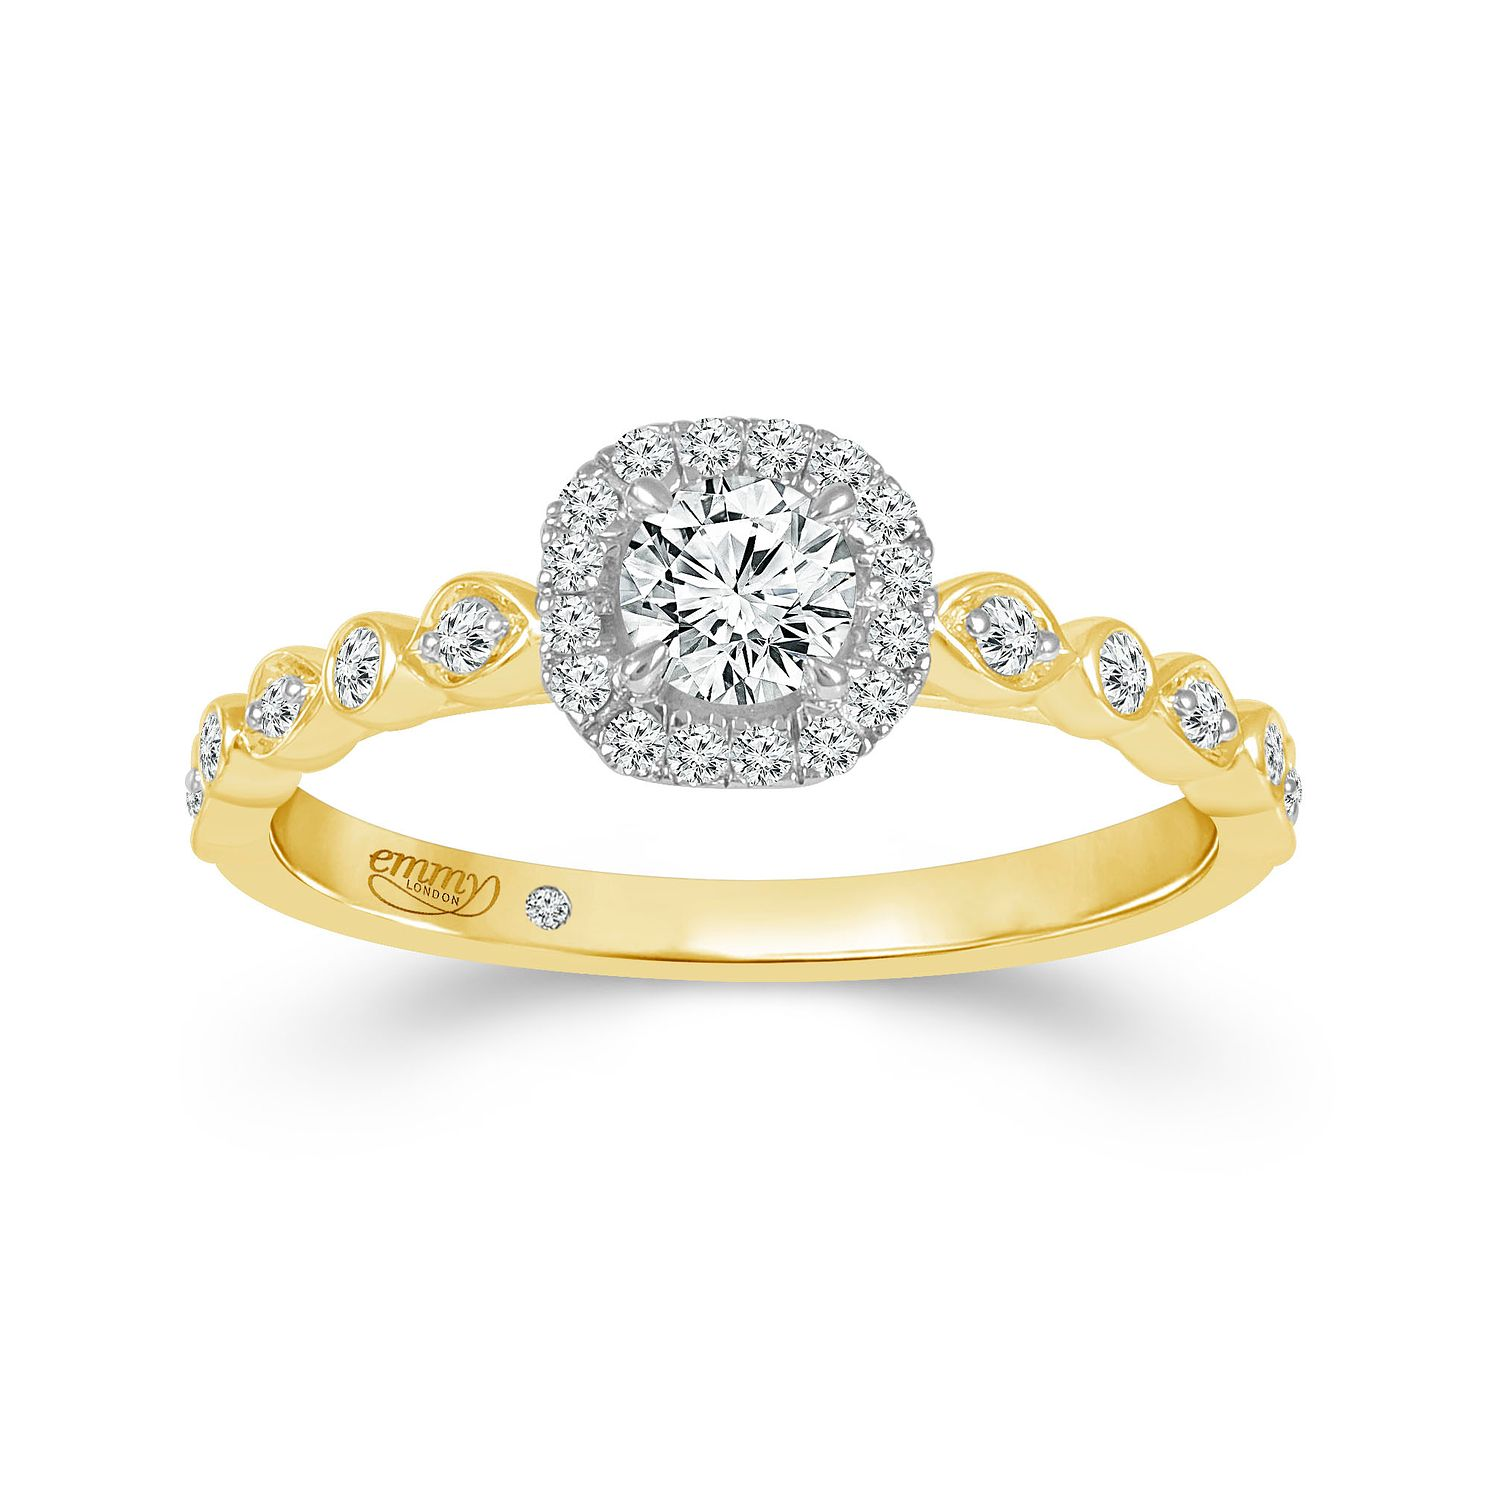 Emmy London 18ct Yellow Gold 0.40ct Diamond Halo Ring - Product number 4585674